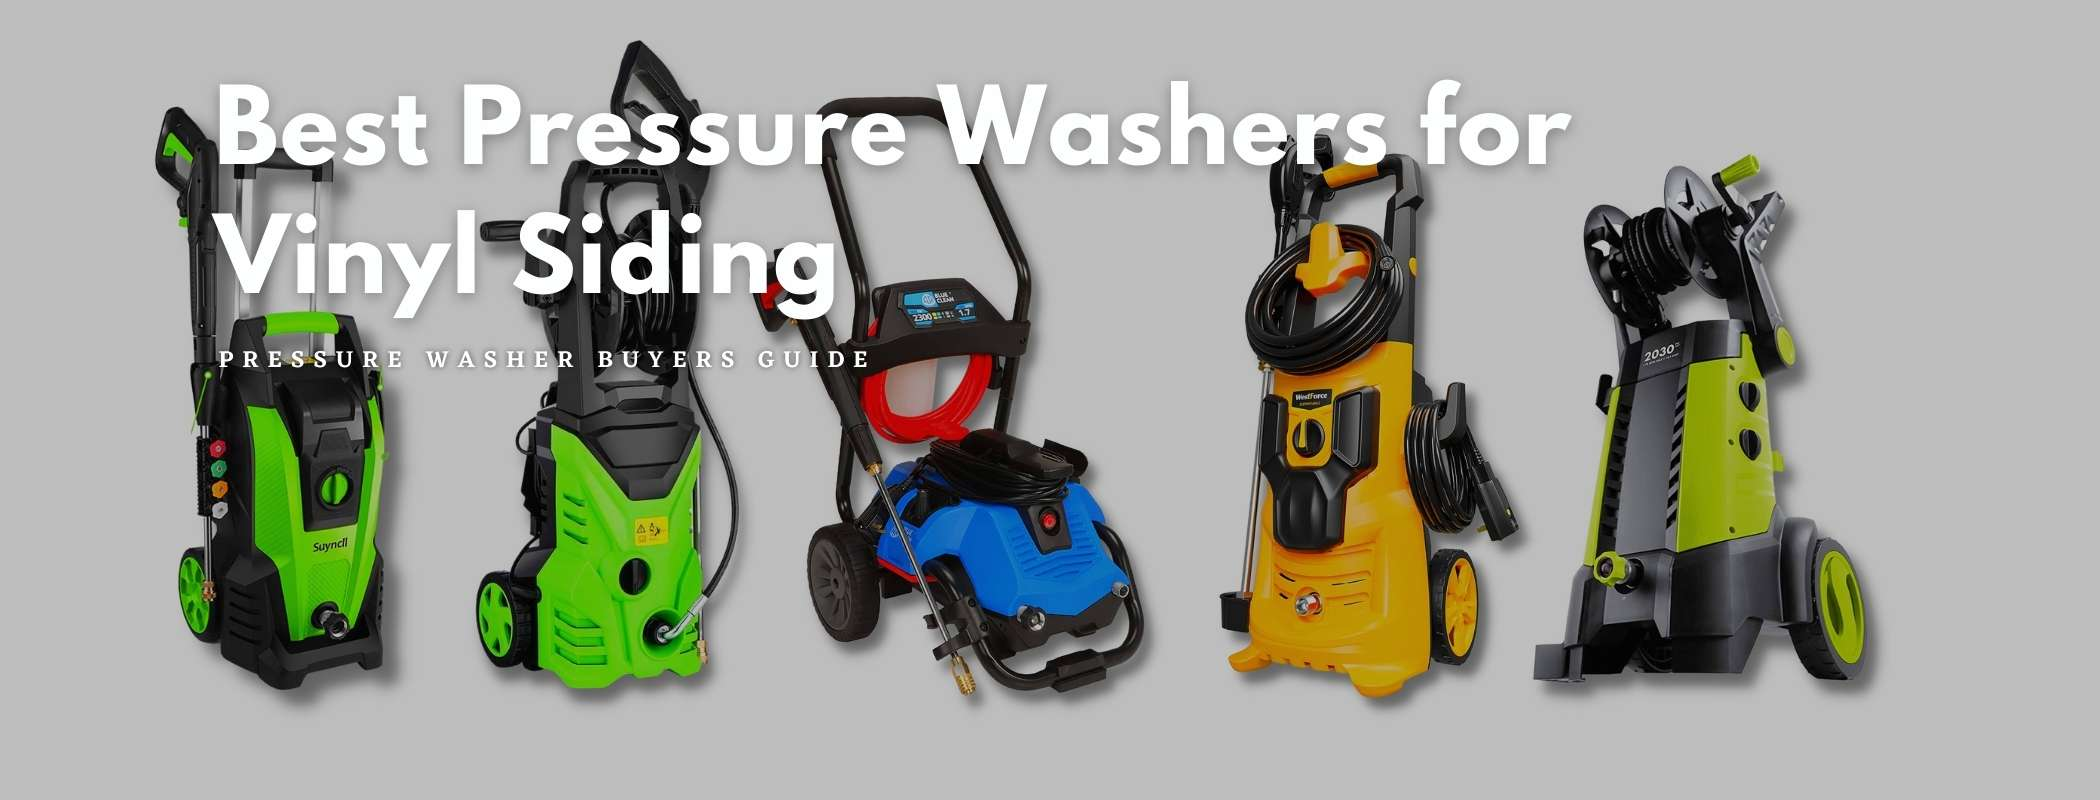 Best Pressure Washers for Vinyl Siding Buyer's Guide